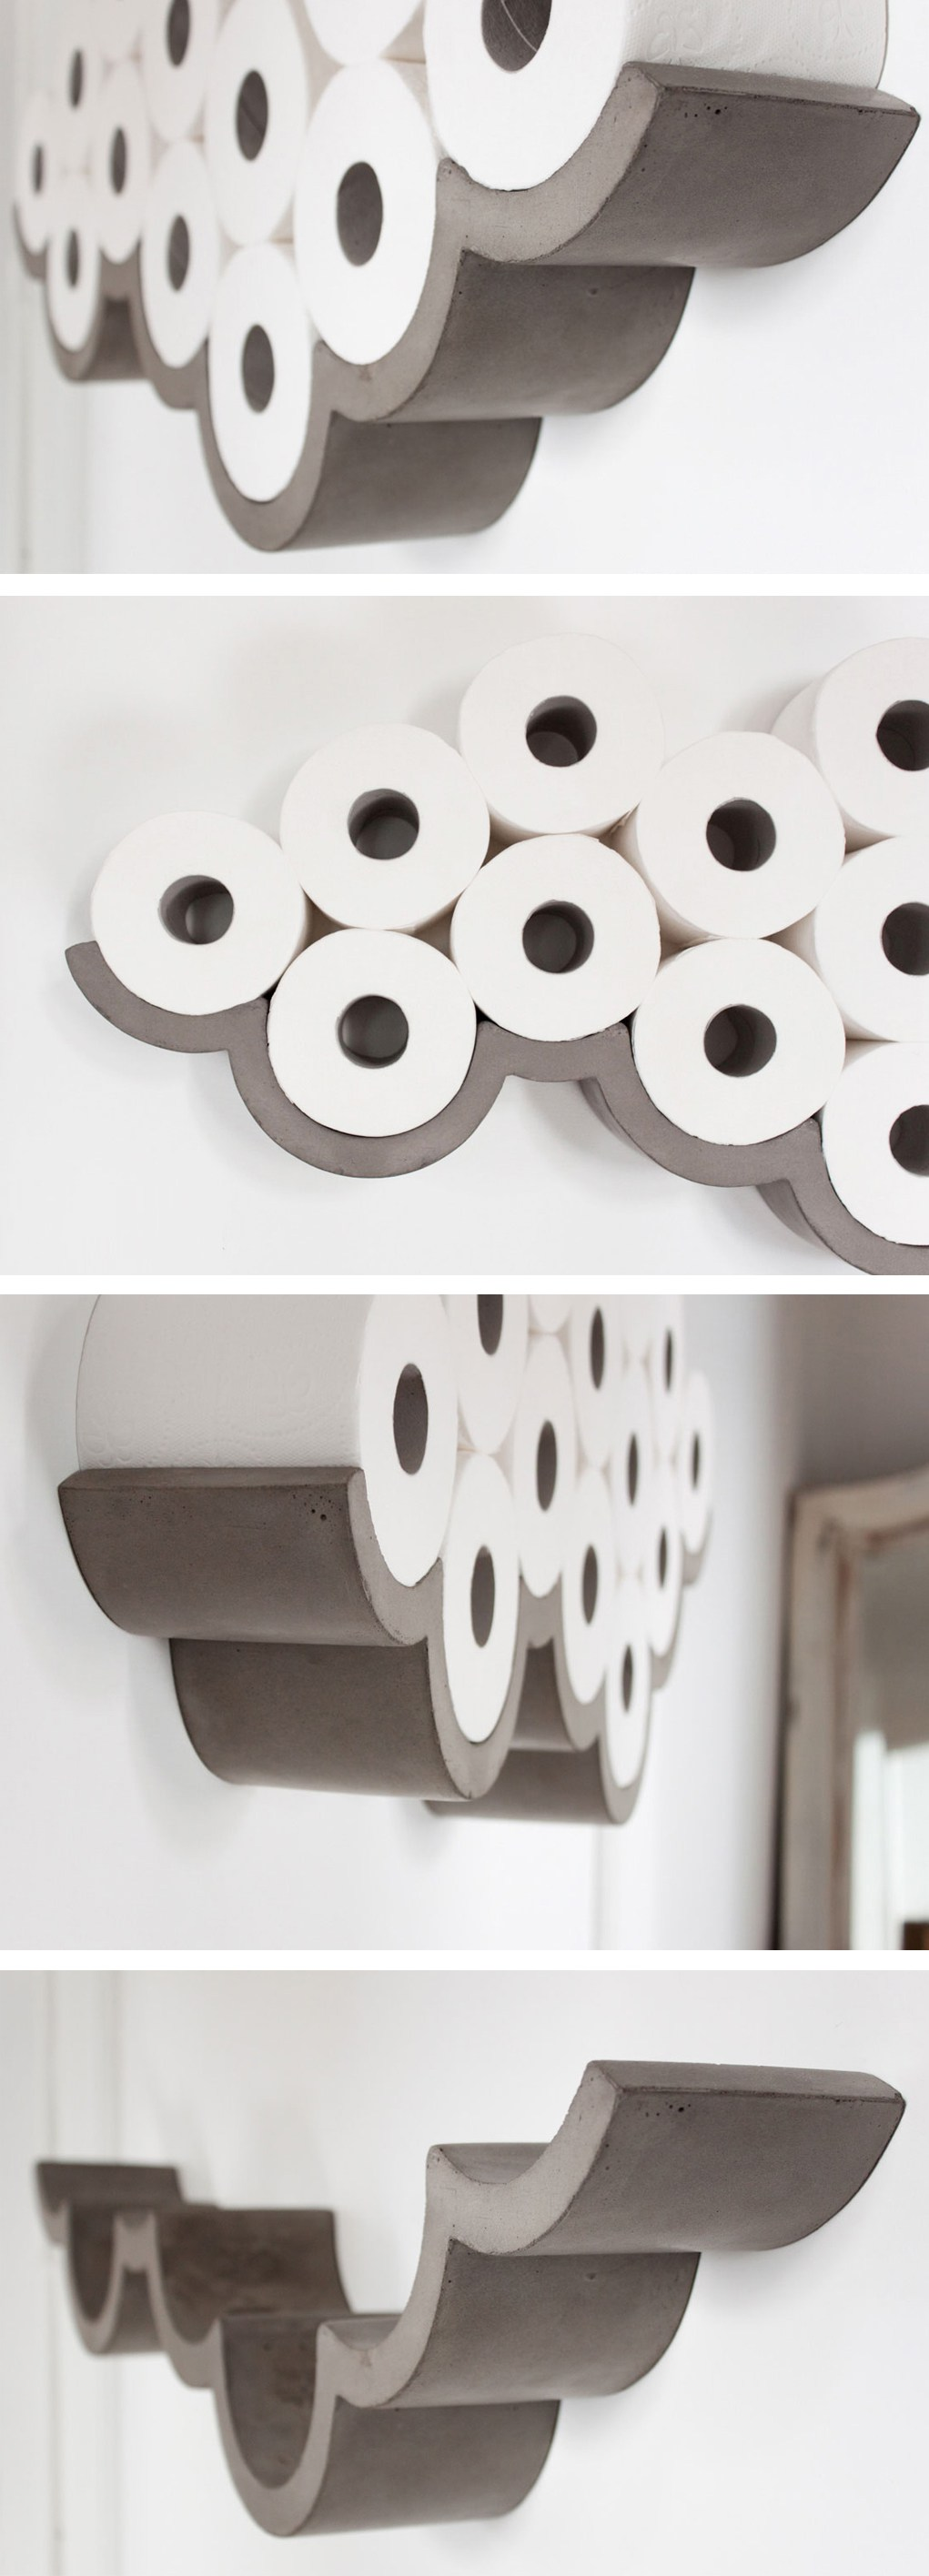 Toilet Paper Holder Unique 25 Best Toilet Paper Holder Ideas And Designs For 2019